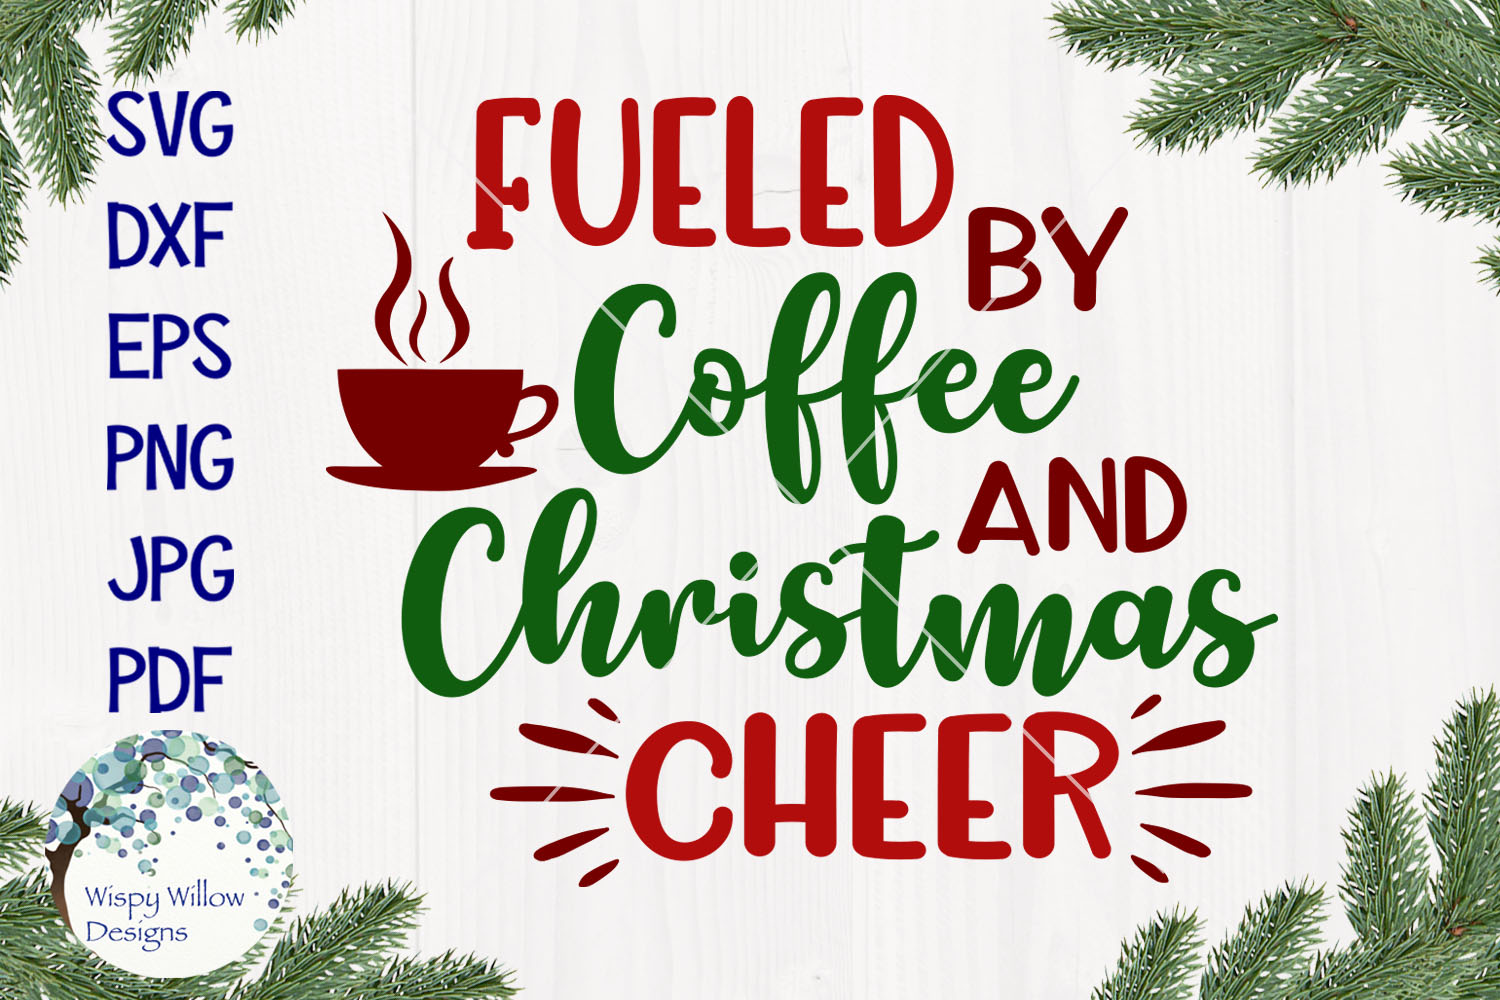 Fueled By Christmas Cheer | Christmas SVG Bundle example image 8